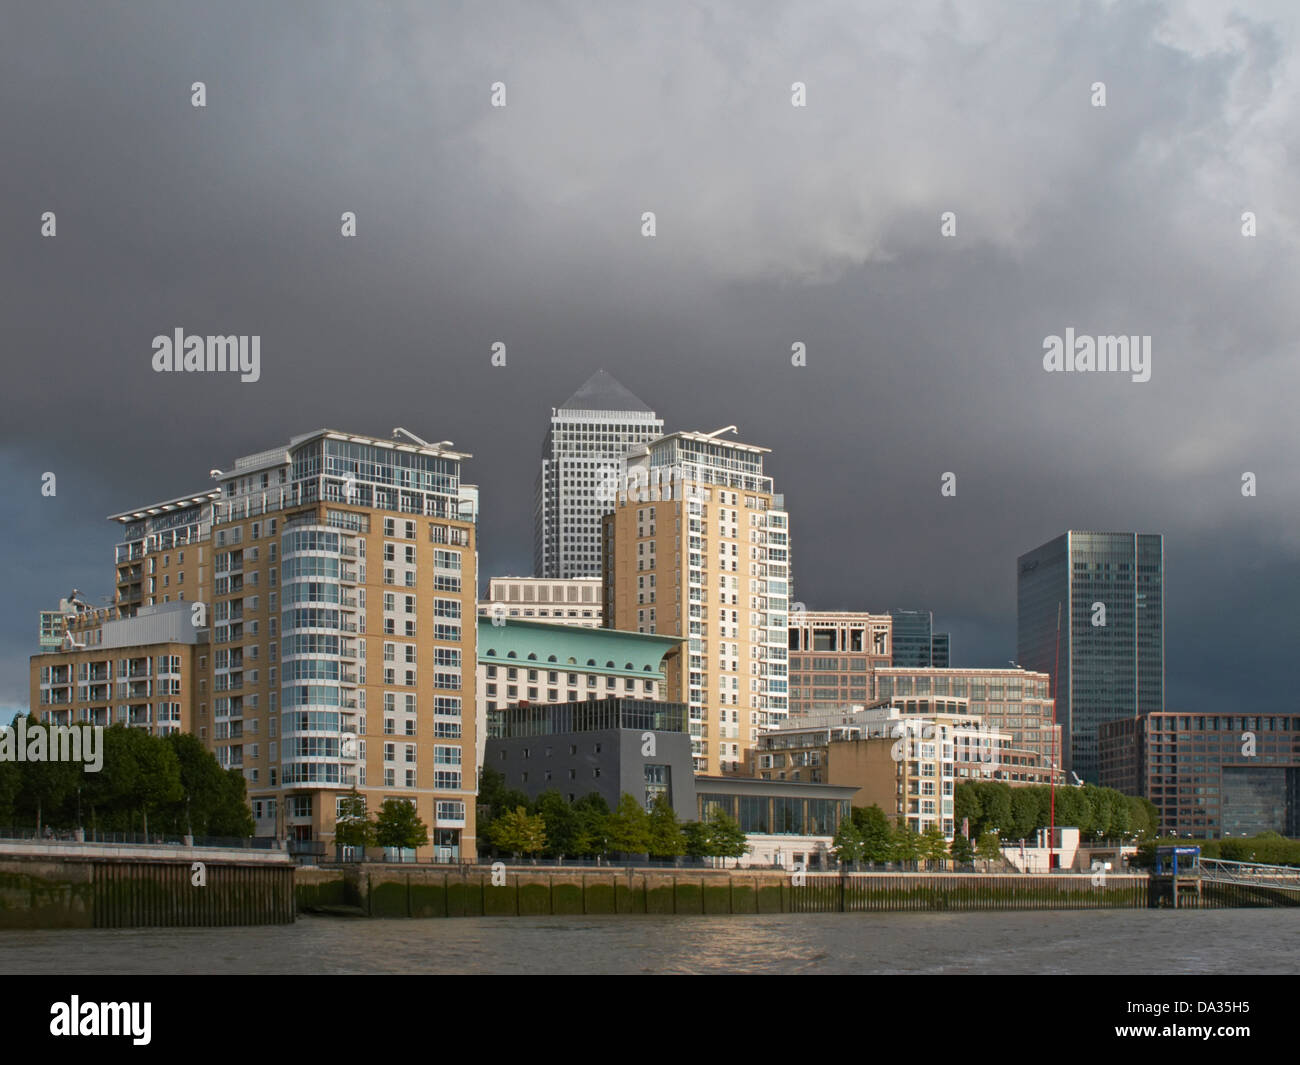 London Docklands and Canary wharf from the river Thames - Stock Image